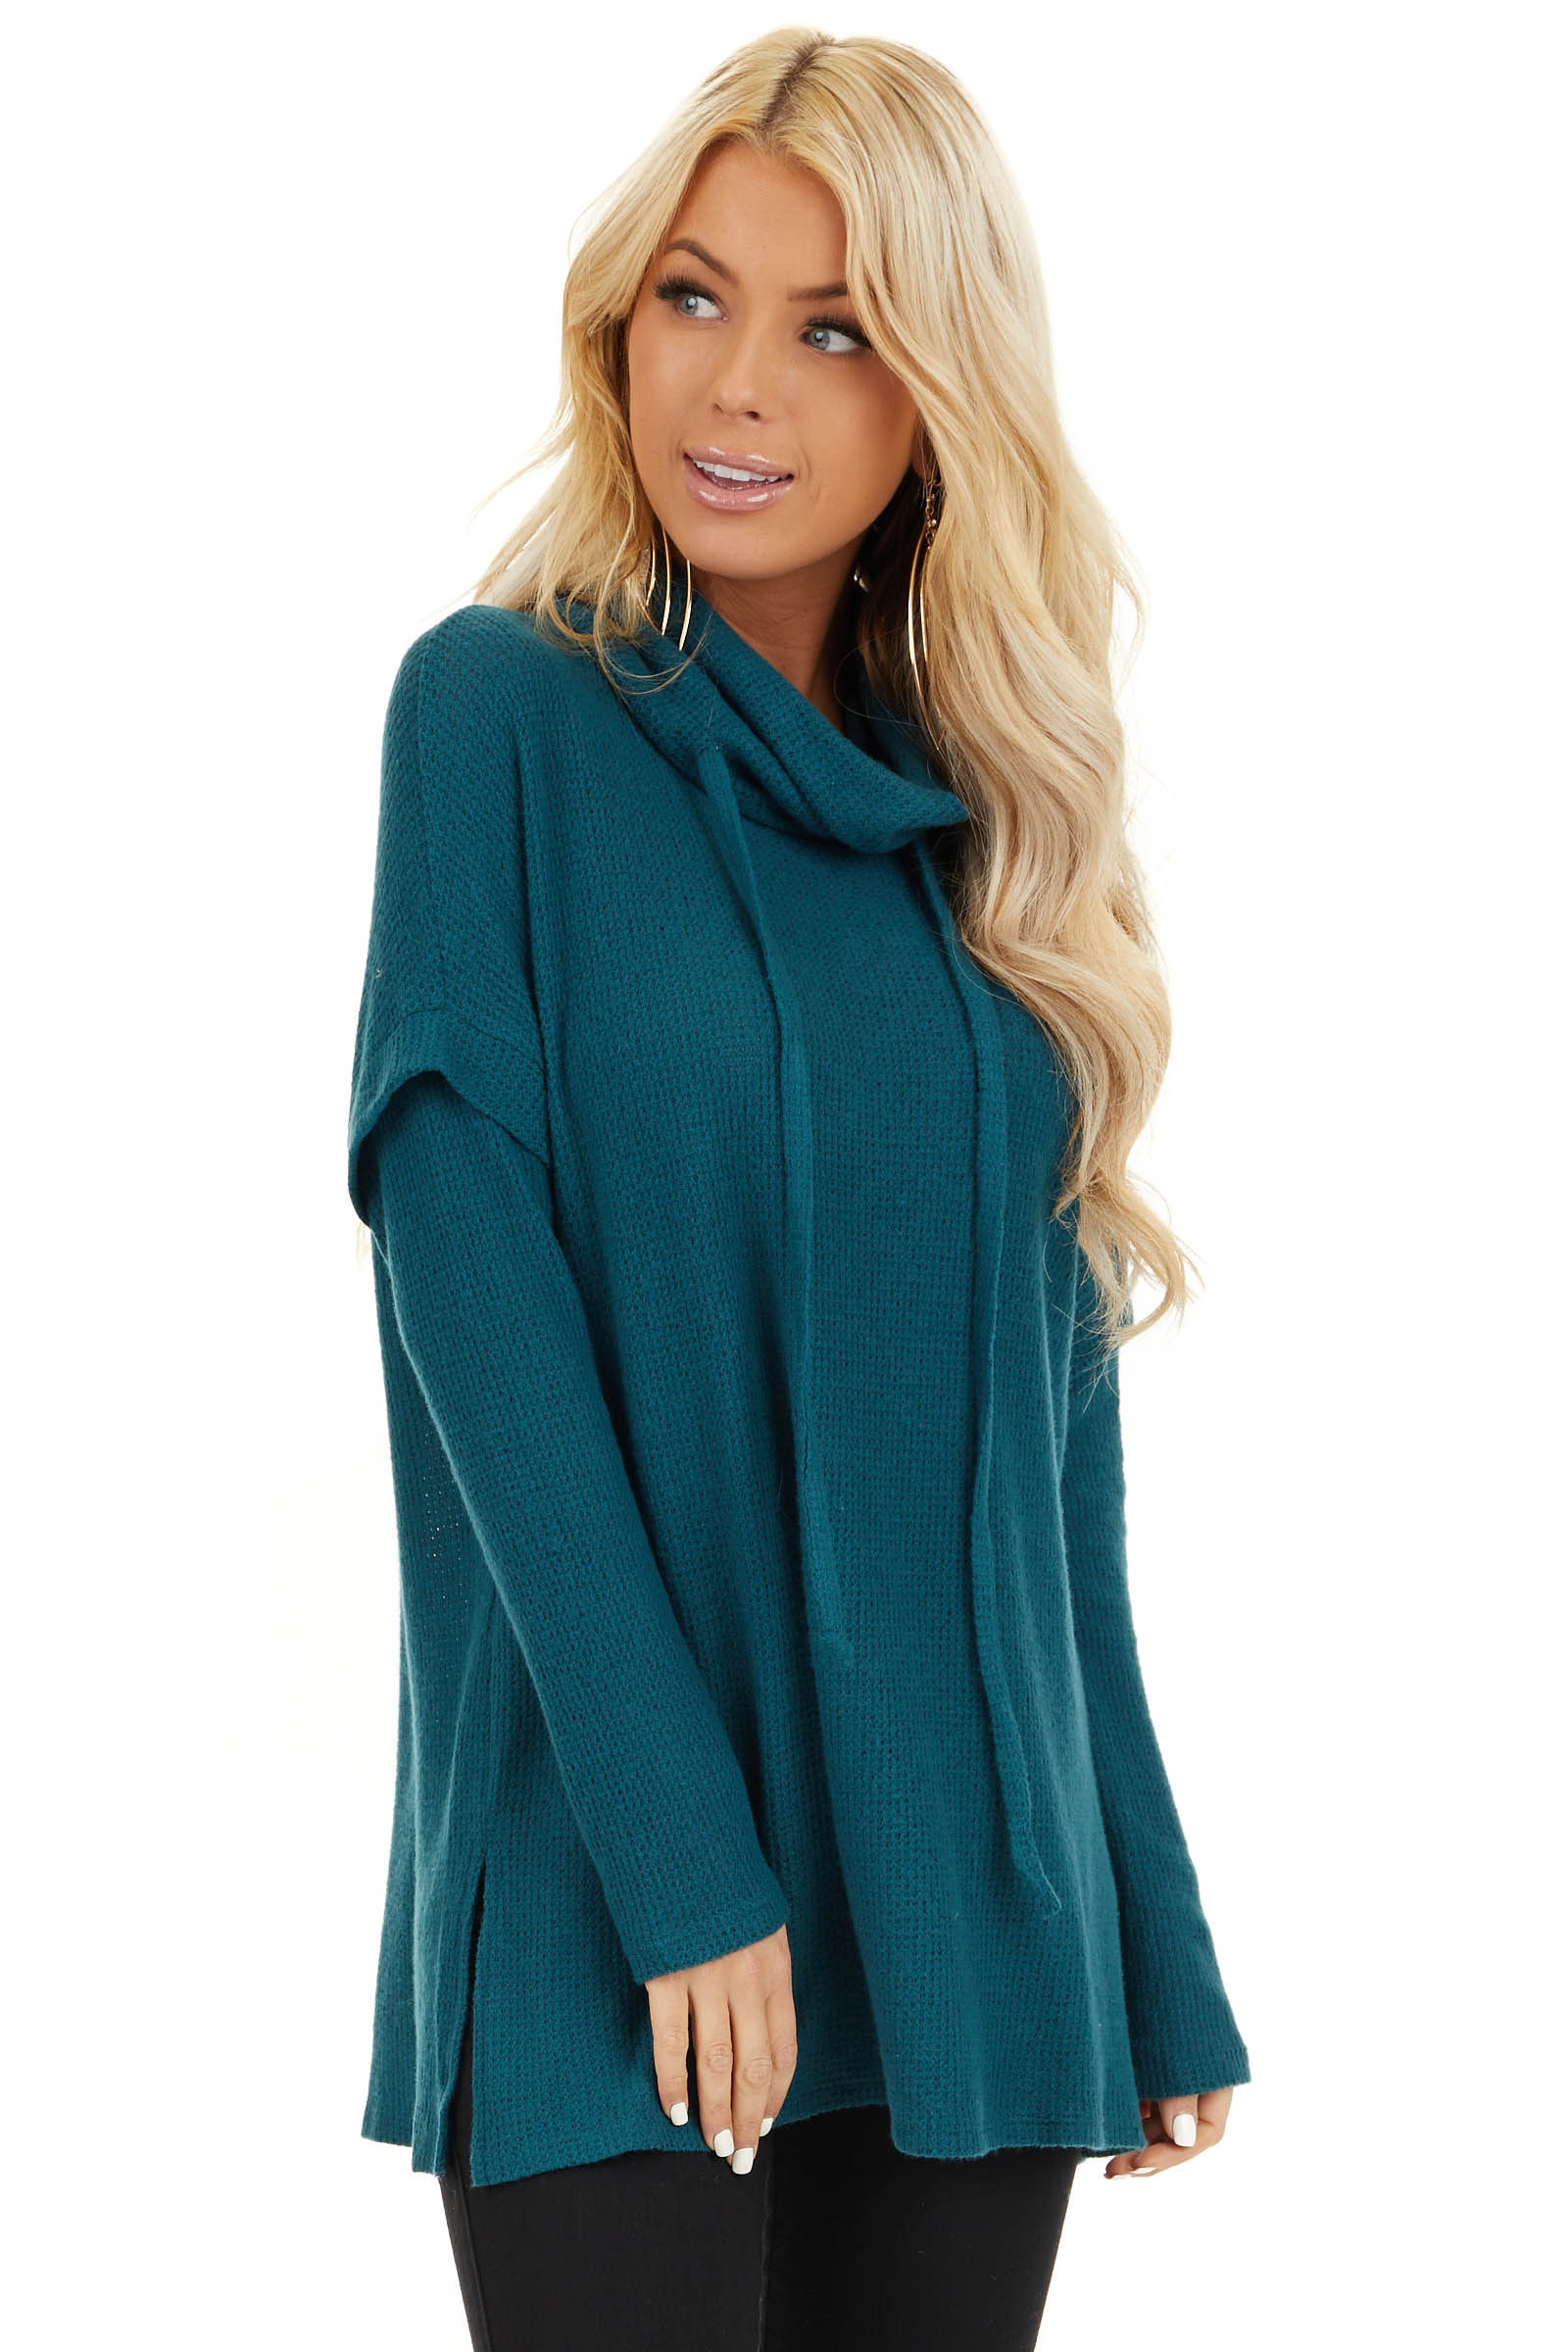 Dark Teal Waffle Knit Cowl Neck Top with Drawstrings front close up